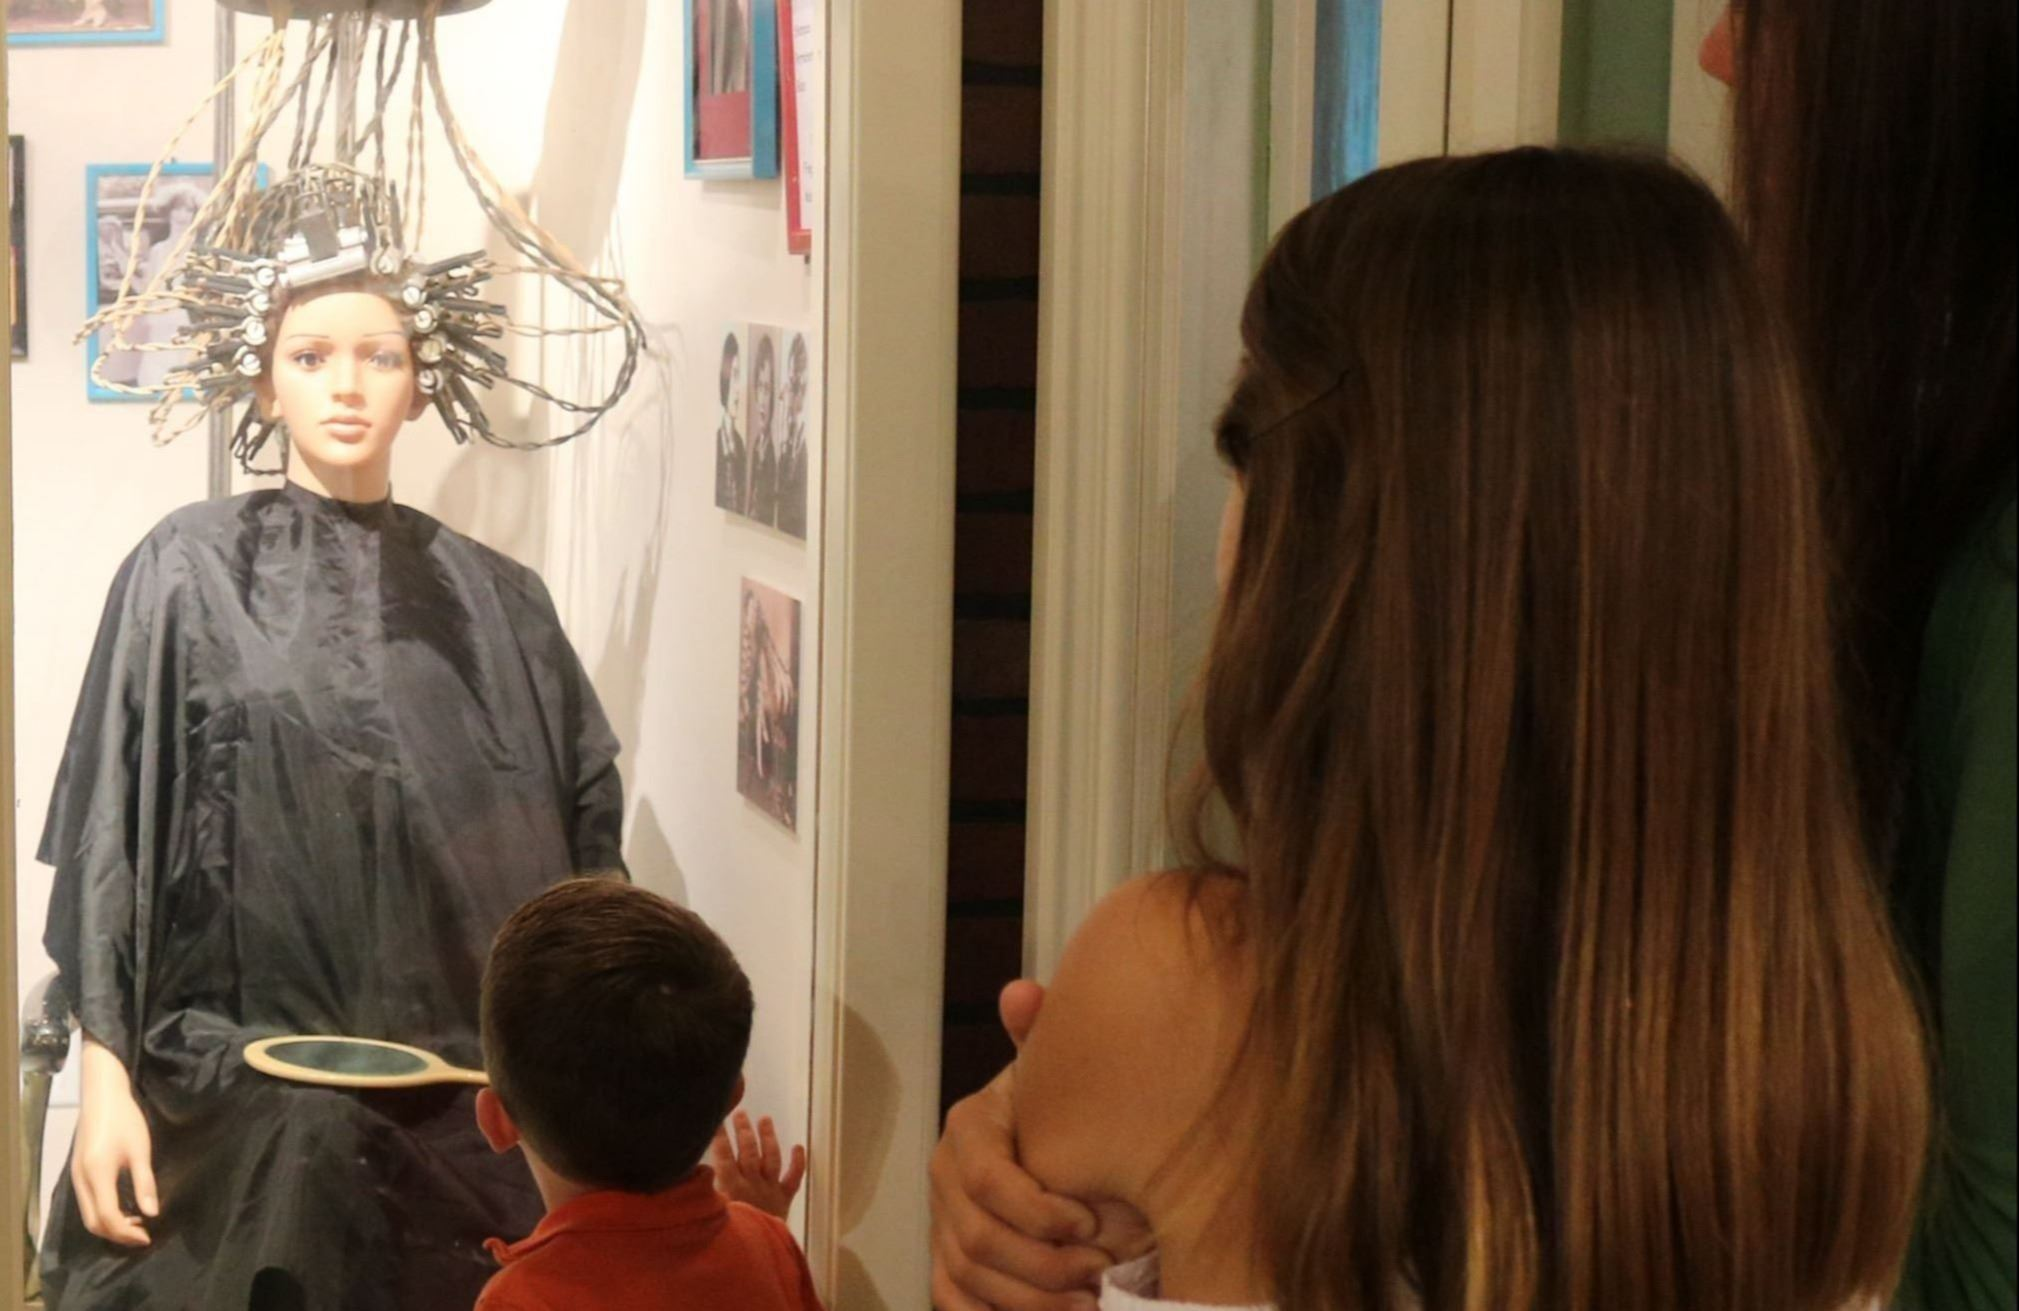 Museum, Family looking at antique hair curler